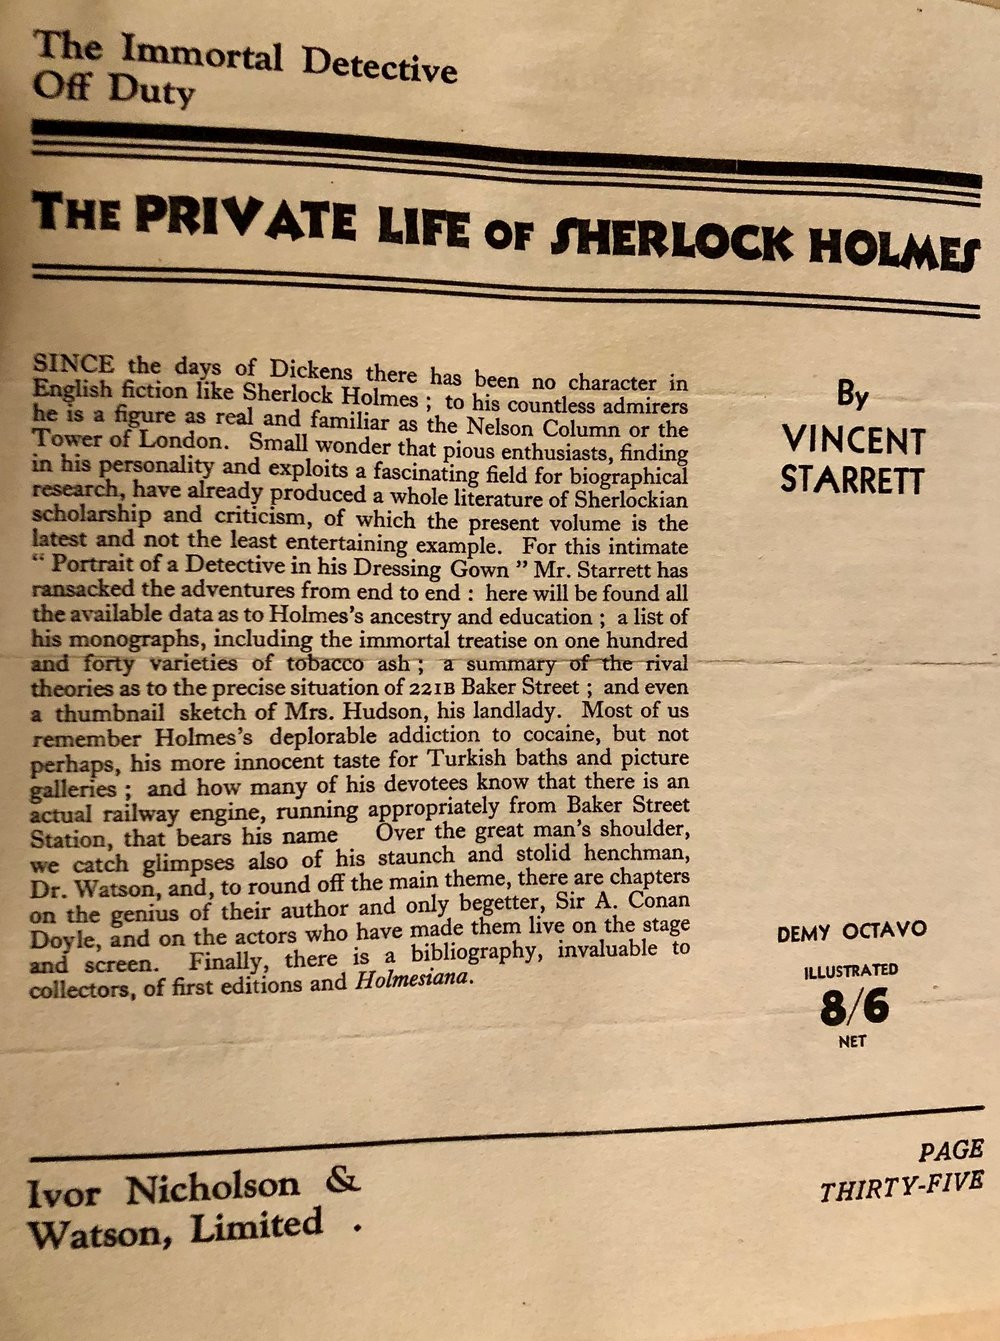 Ivor Nicholson & Watson's catalogue, with the page advertising the publication of  The Private Life of Sherlock Holmes . From Starrett's scrapbook of newspaper and magazine clippings.